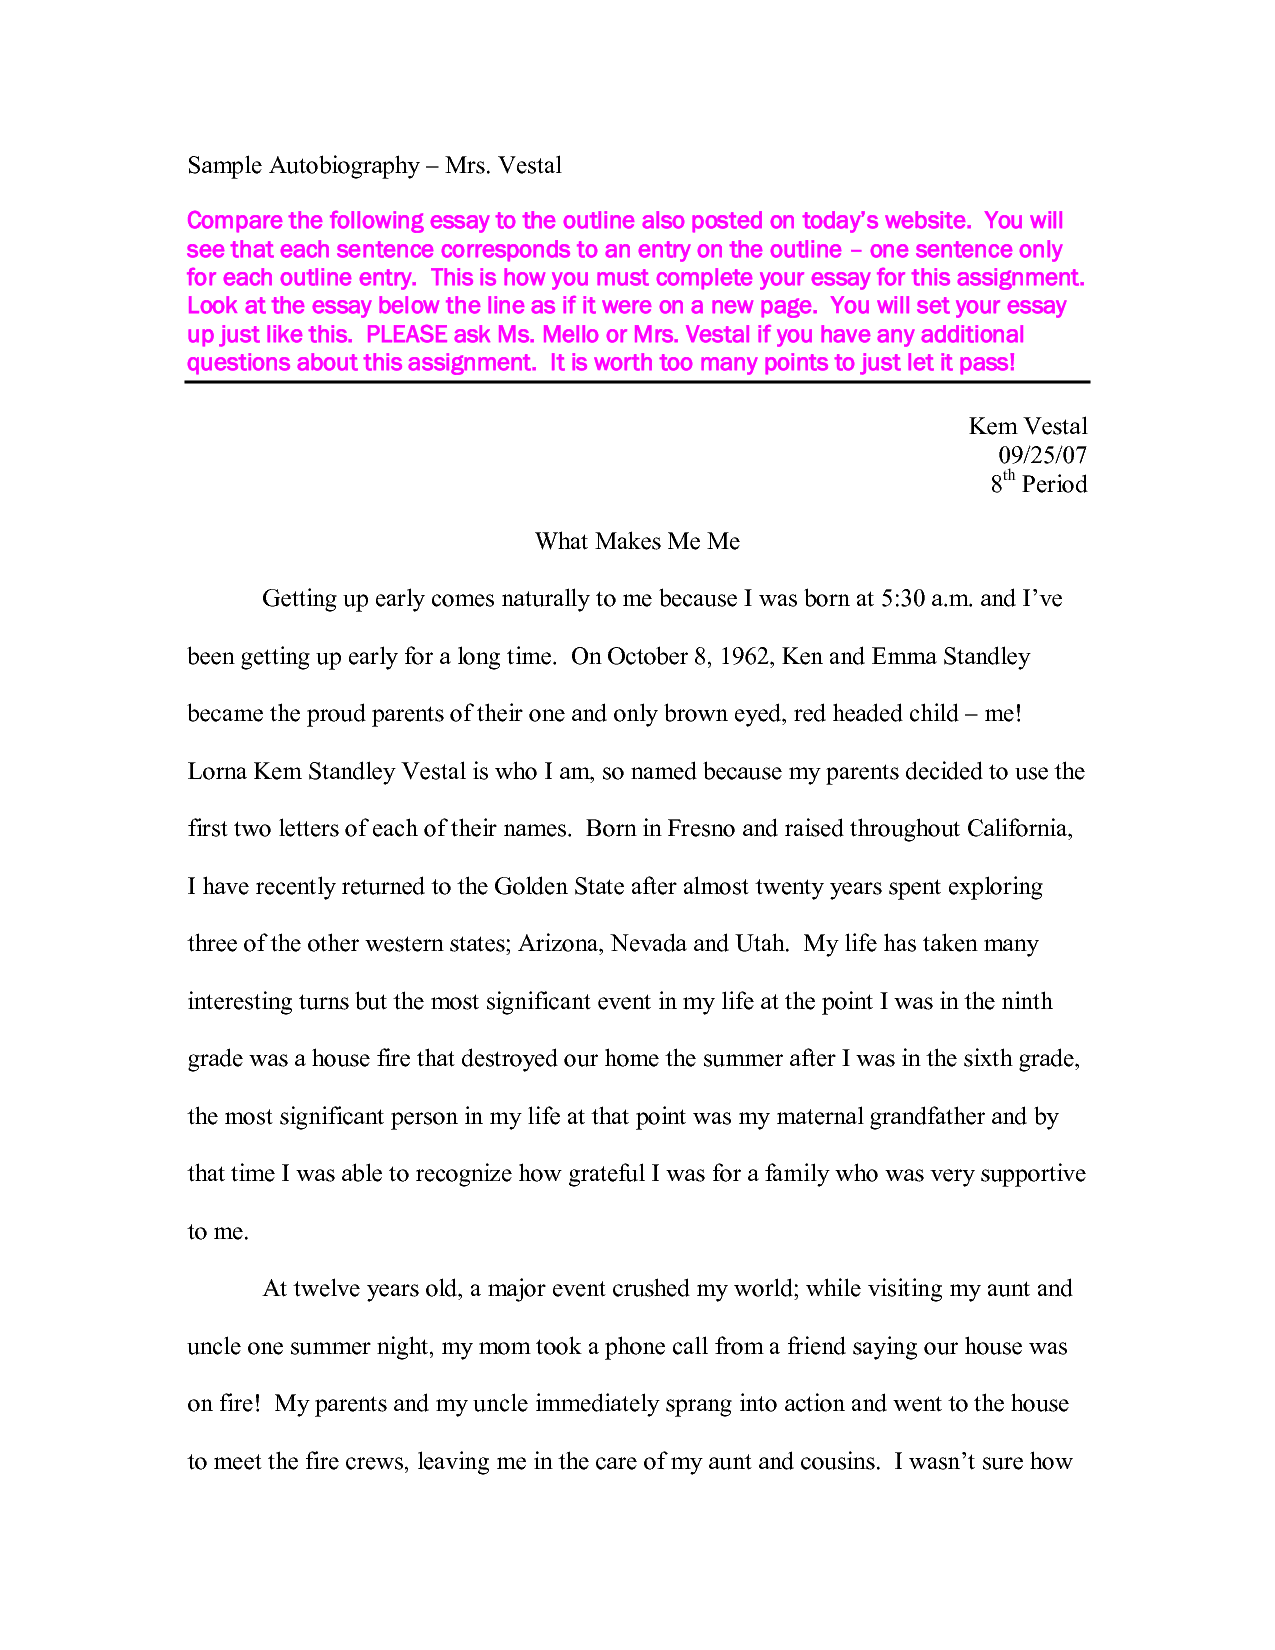 008 Autobiography Essay Example How To Write Unique Of About Yourself Tagalog Bio For Students Full